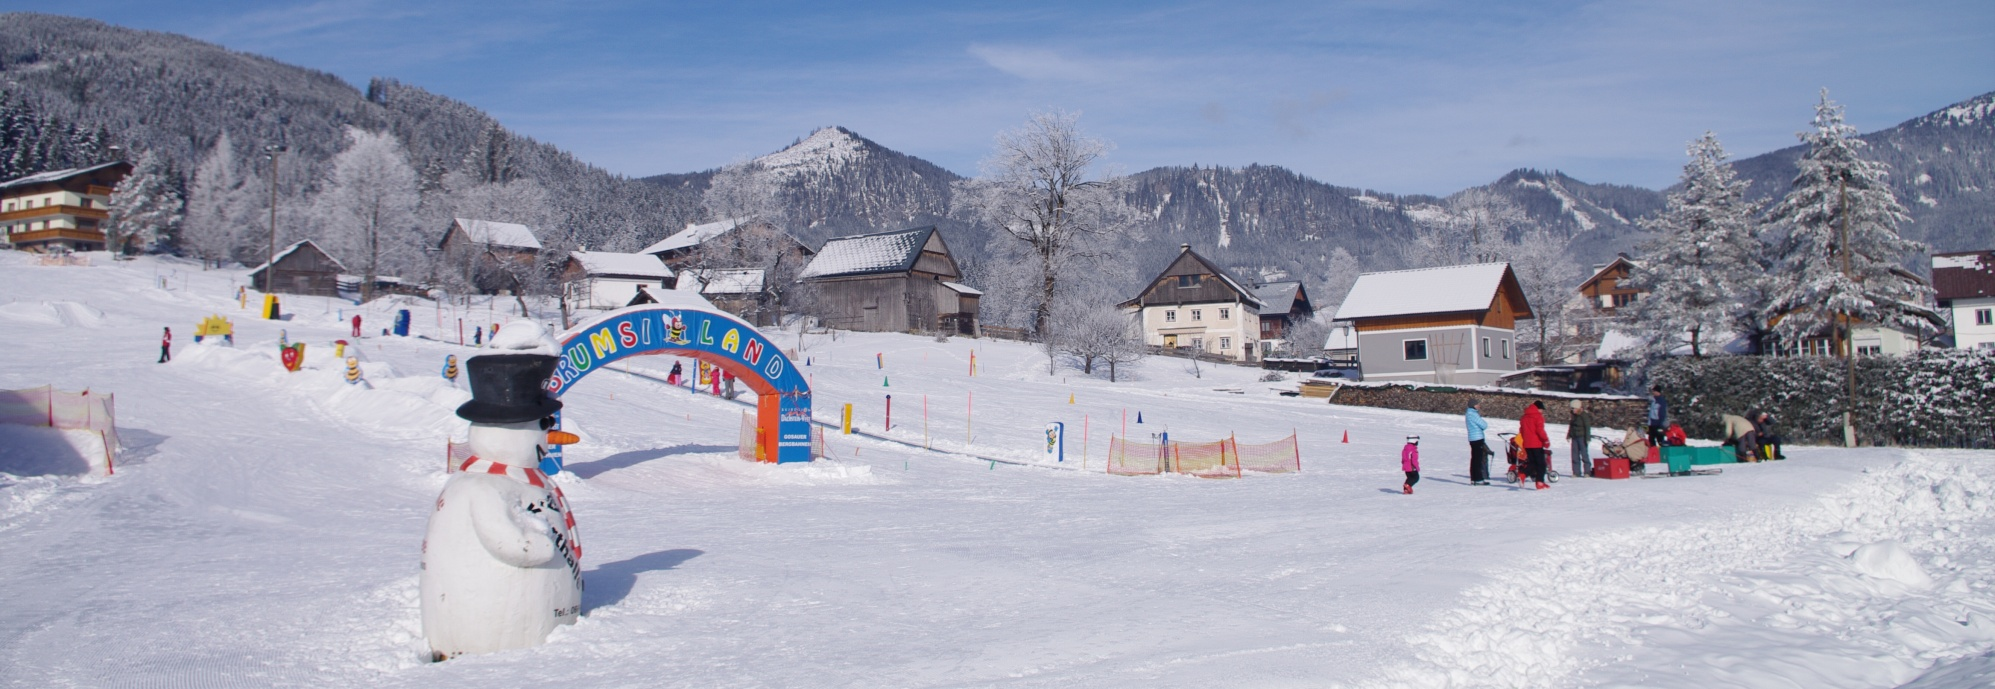 Ski resort Gosau, Dachstein West, Ausztria